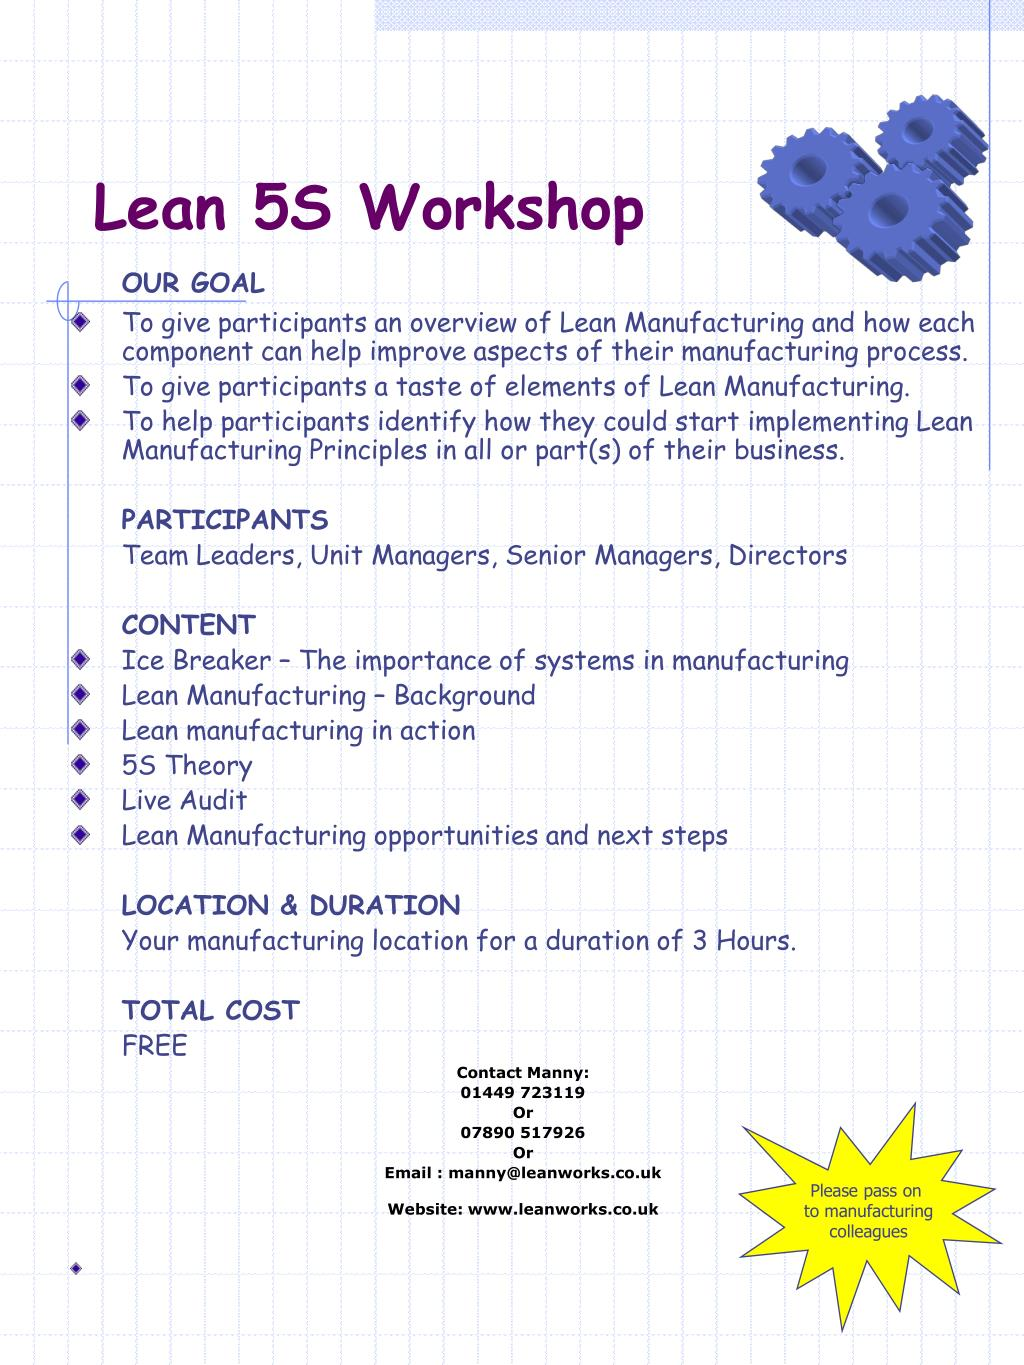 PPT - Lean 5S Workshop PowerPoint Presentation - ID:573720